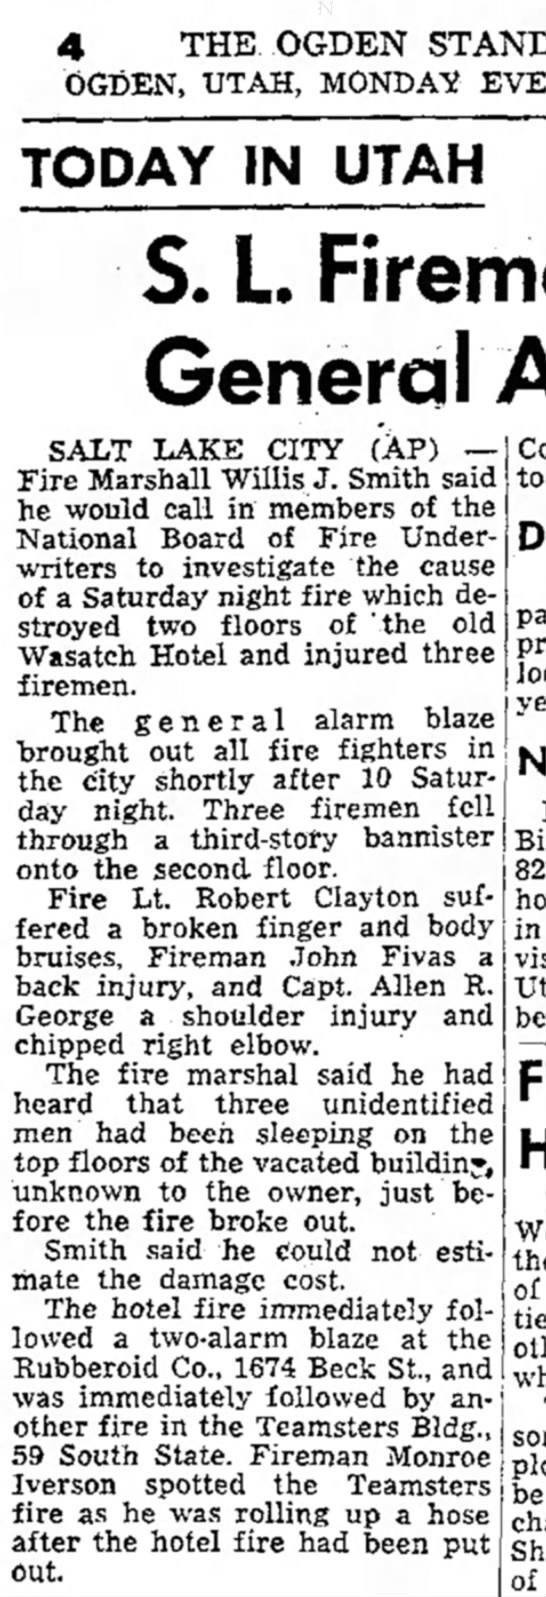 OSE 1-16-56 Allen G. fire injury -